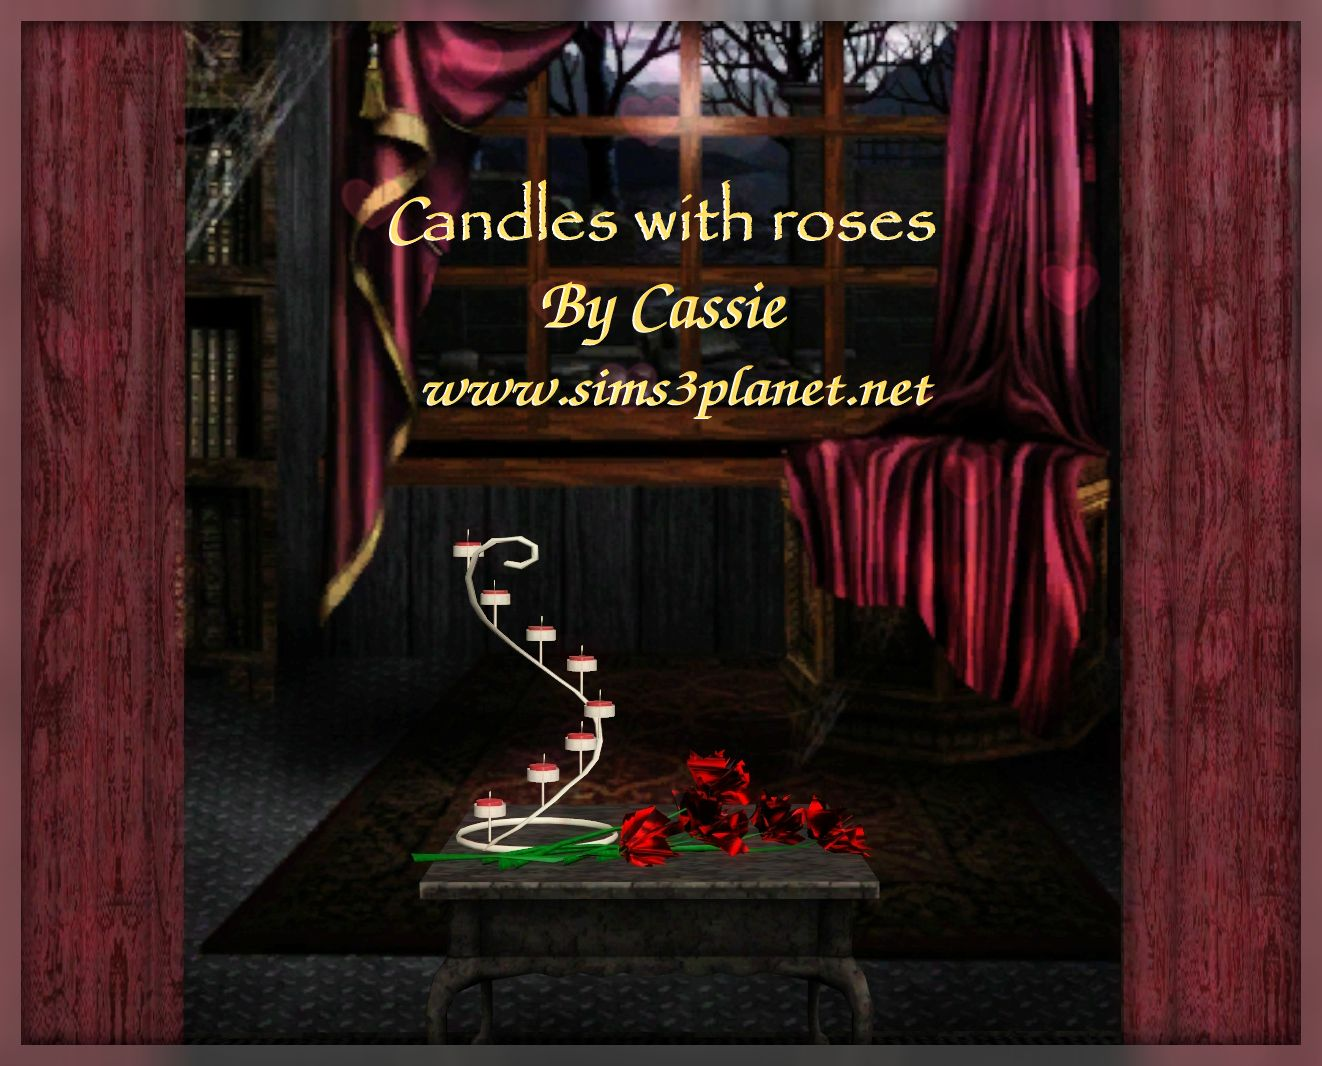 Сandles with roses conversion by Cassie